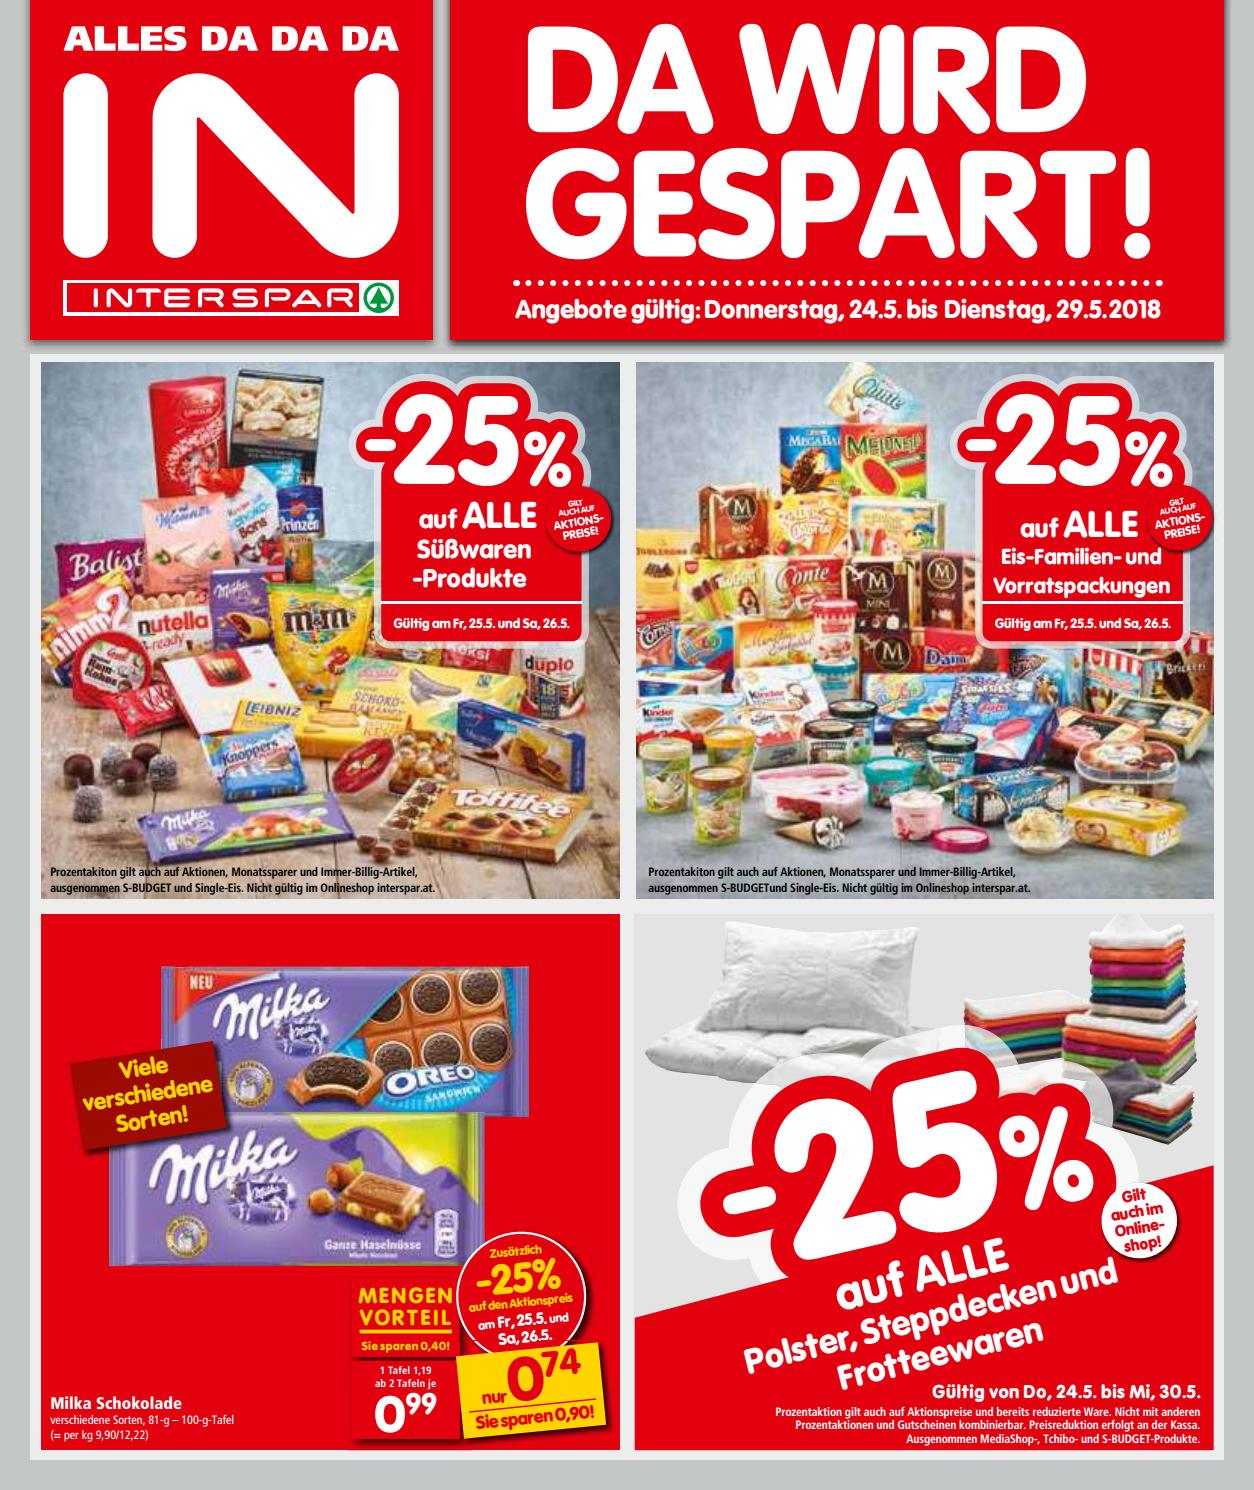 Sonnenliege Interspar Interspar Kw21 By Russmedia Digital Gmbh Issuu